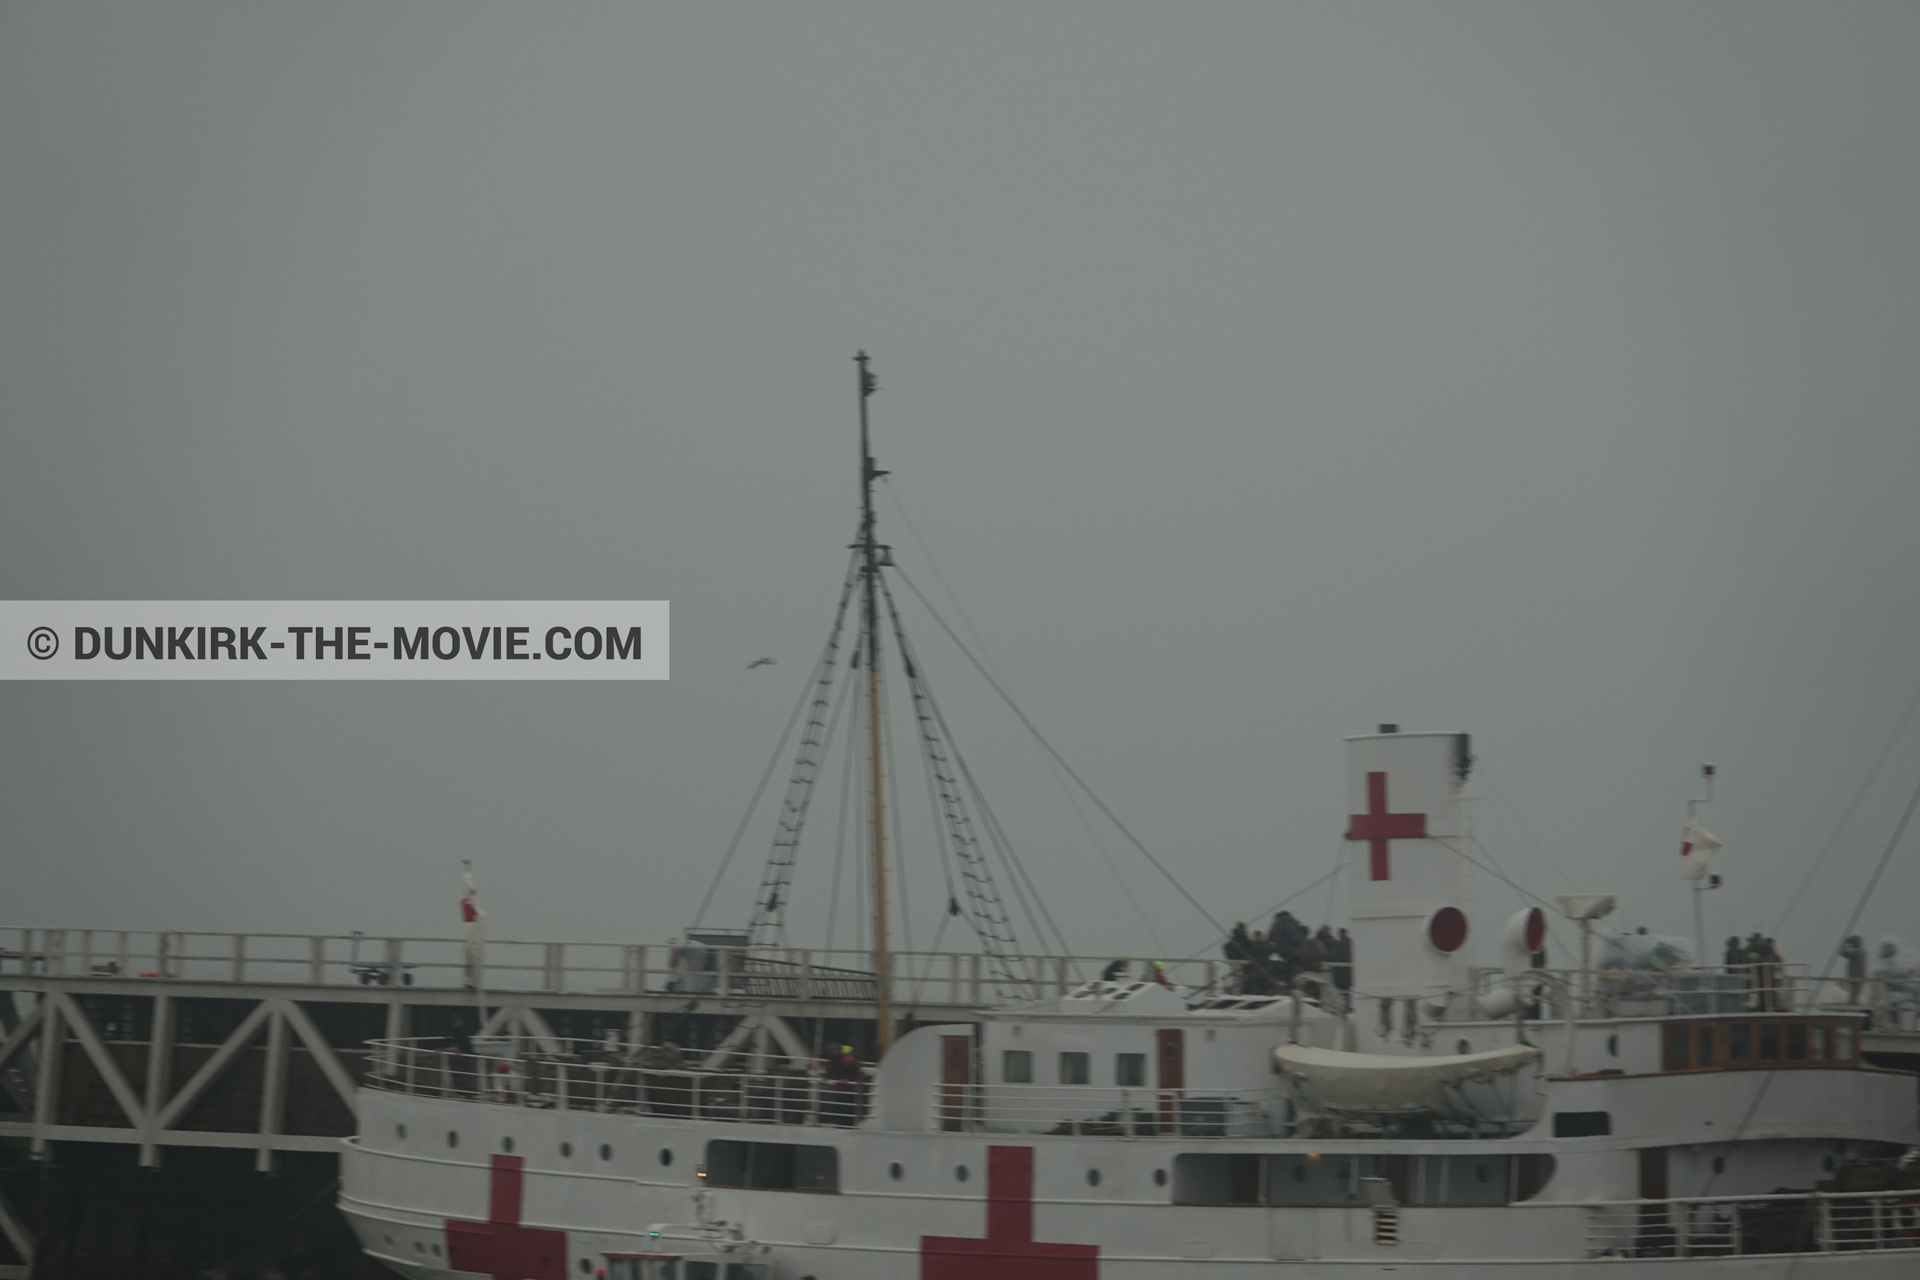 Picture with grey sky, EST pier, M/S Rogaland,  from behind the scene of the Dunkirk movie by Nolan